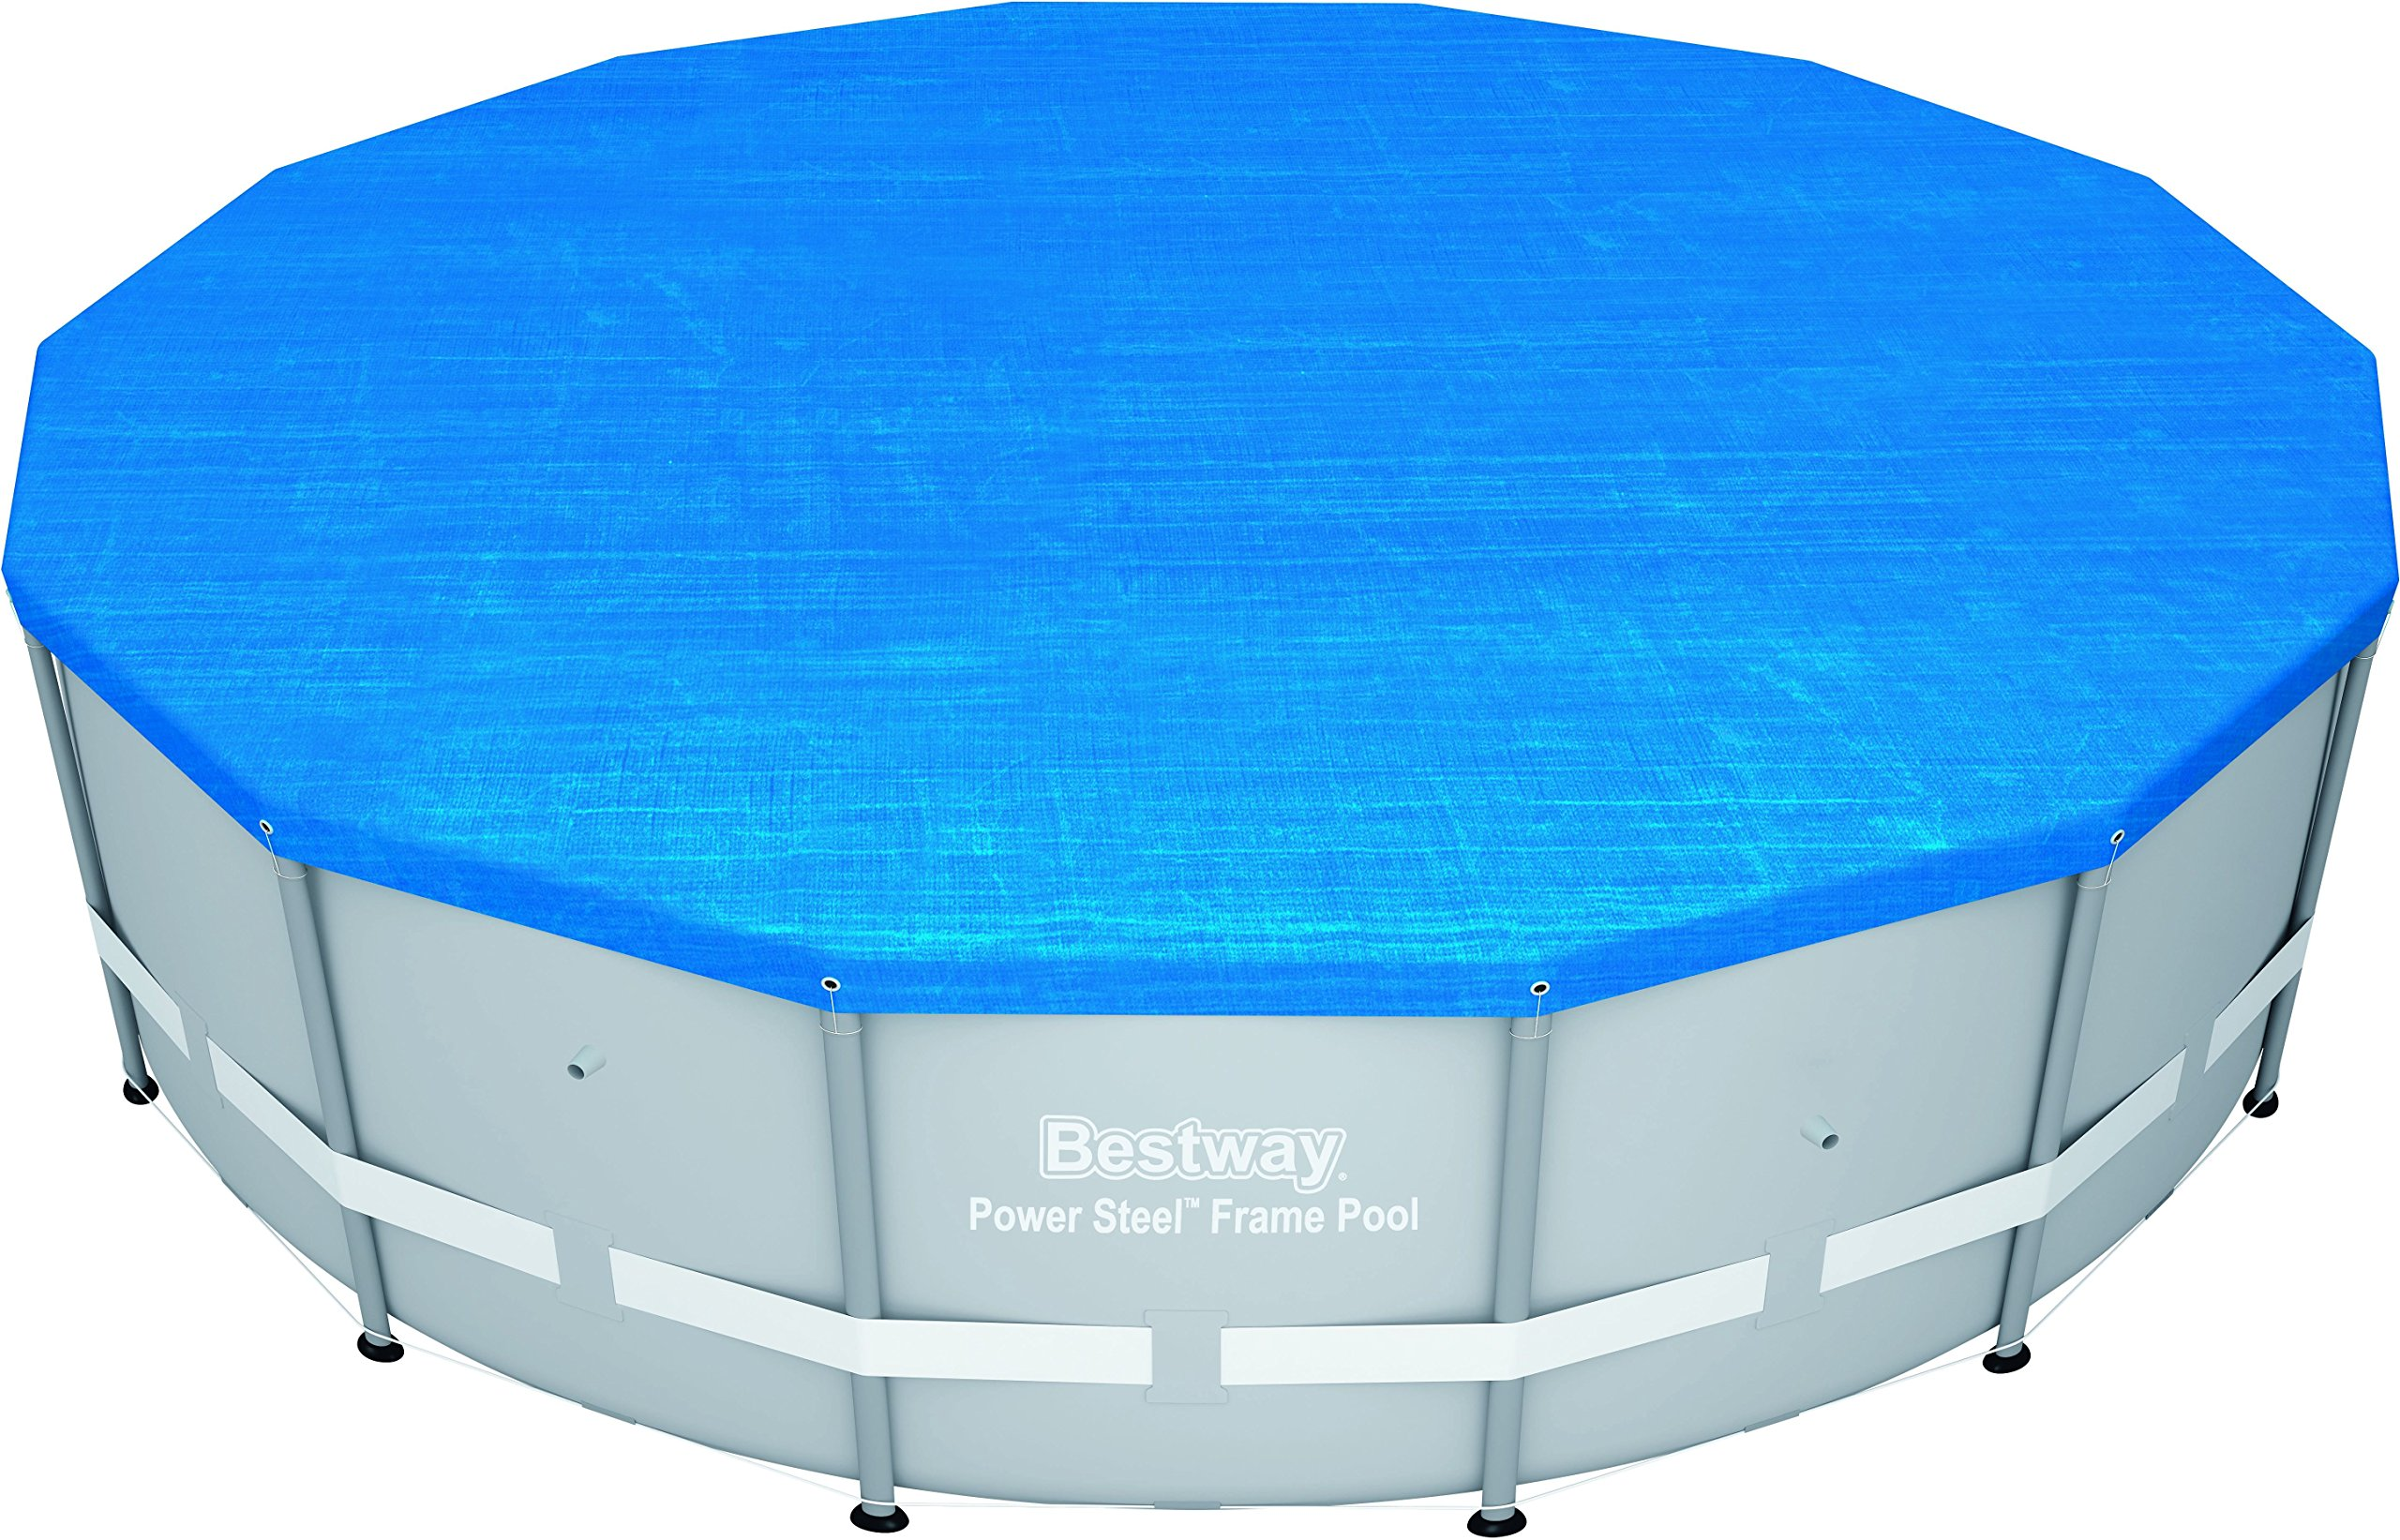 Bestway 56483 Piscina Power Steel Diseño Rattan, M: Amazon.es: Jardín